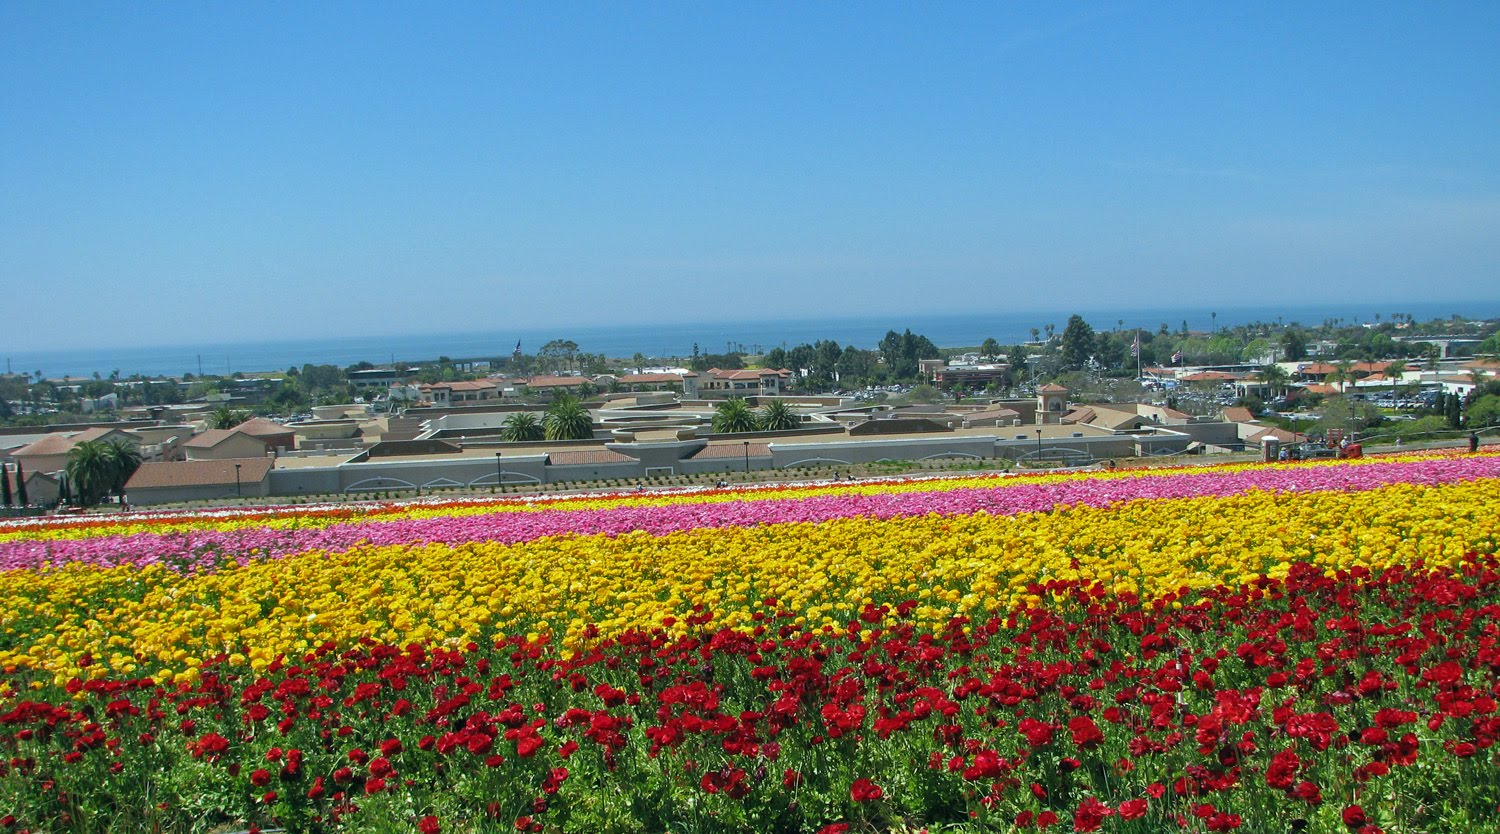 The Bell Curve of Life Carlsbad Flower Fields